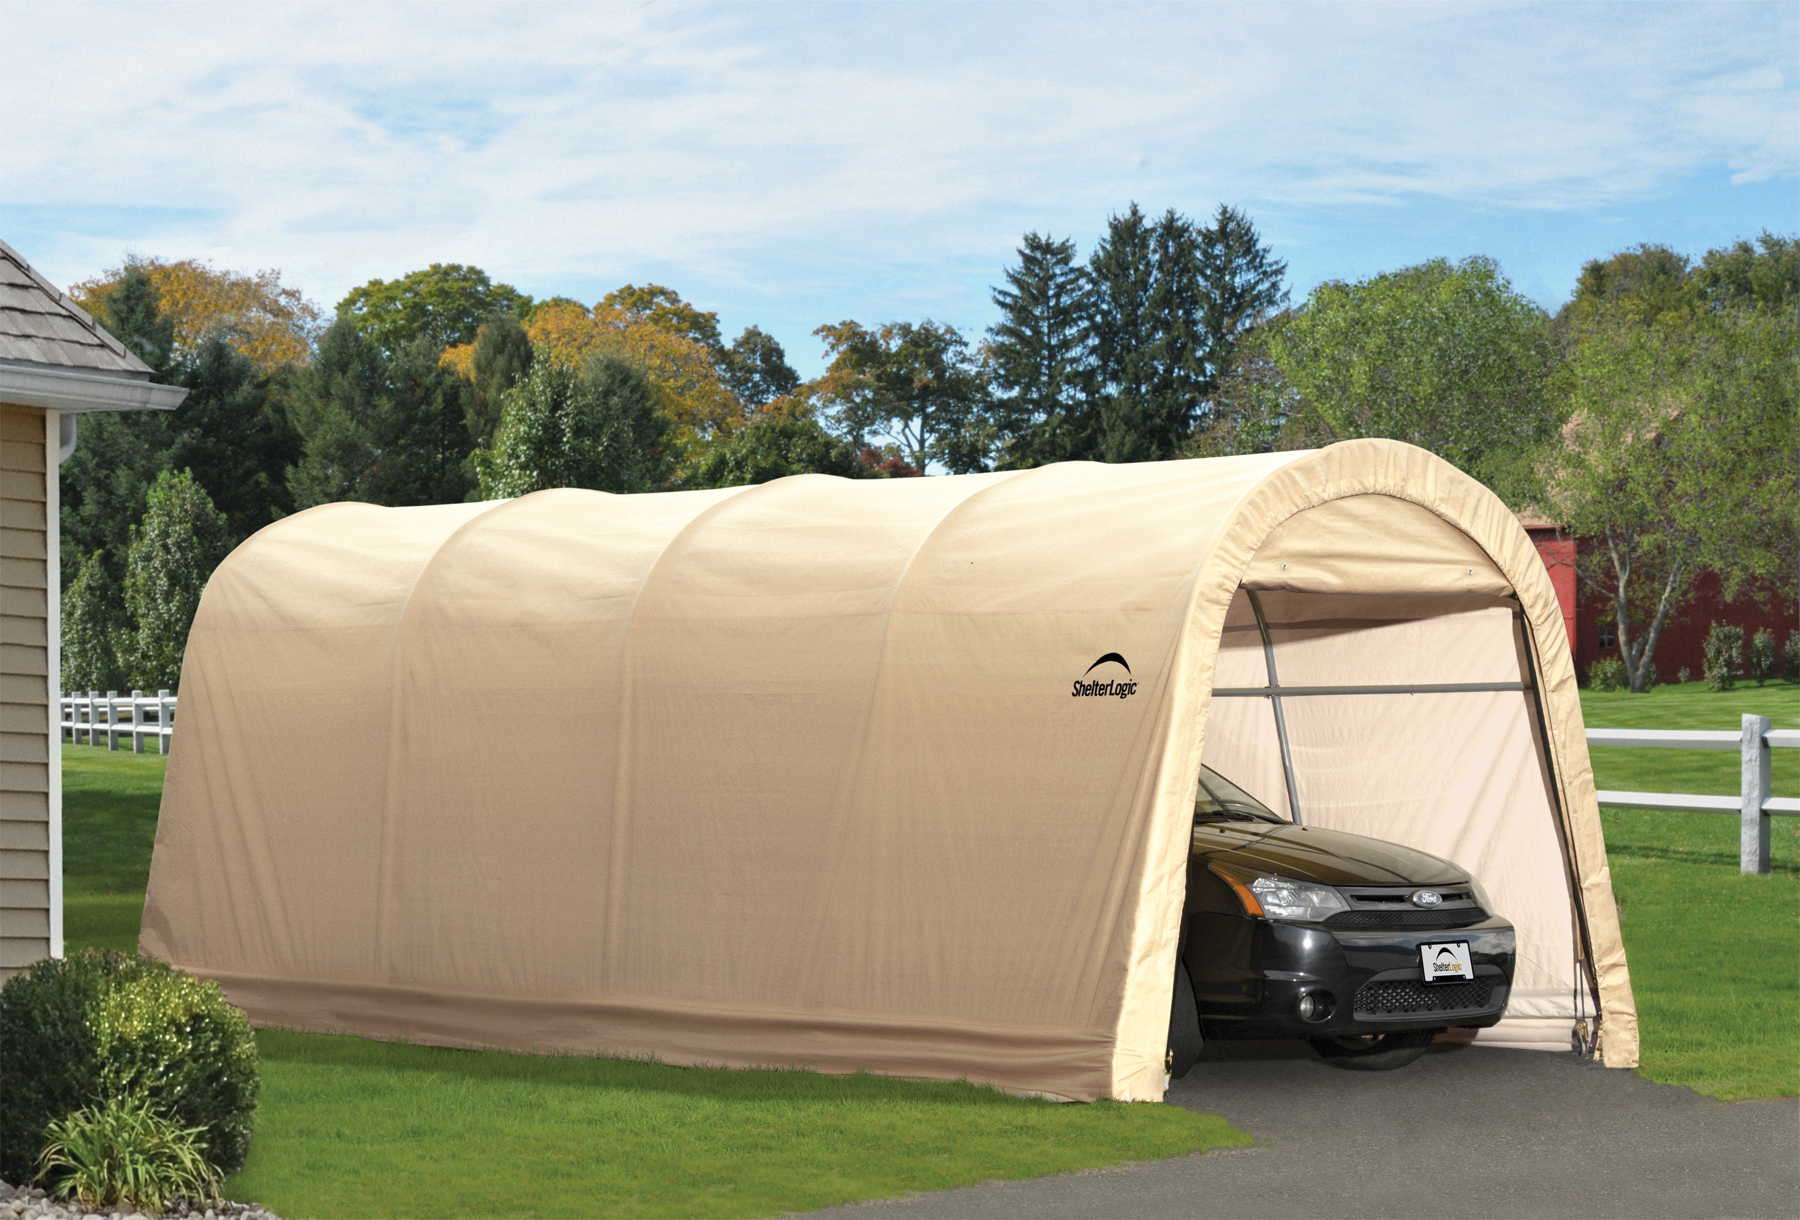 Carport kits portable car garage shelters for Mobile home garage kits